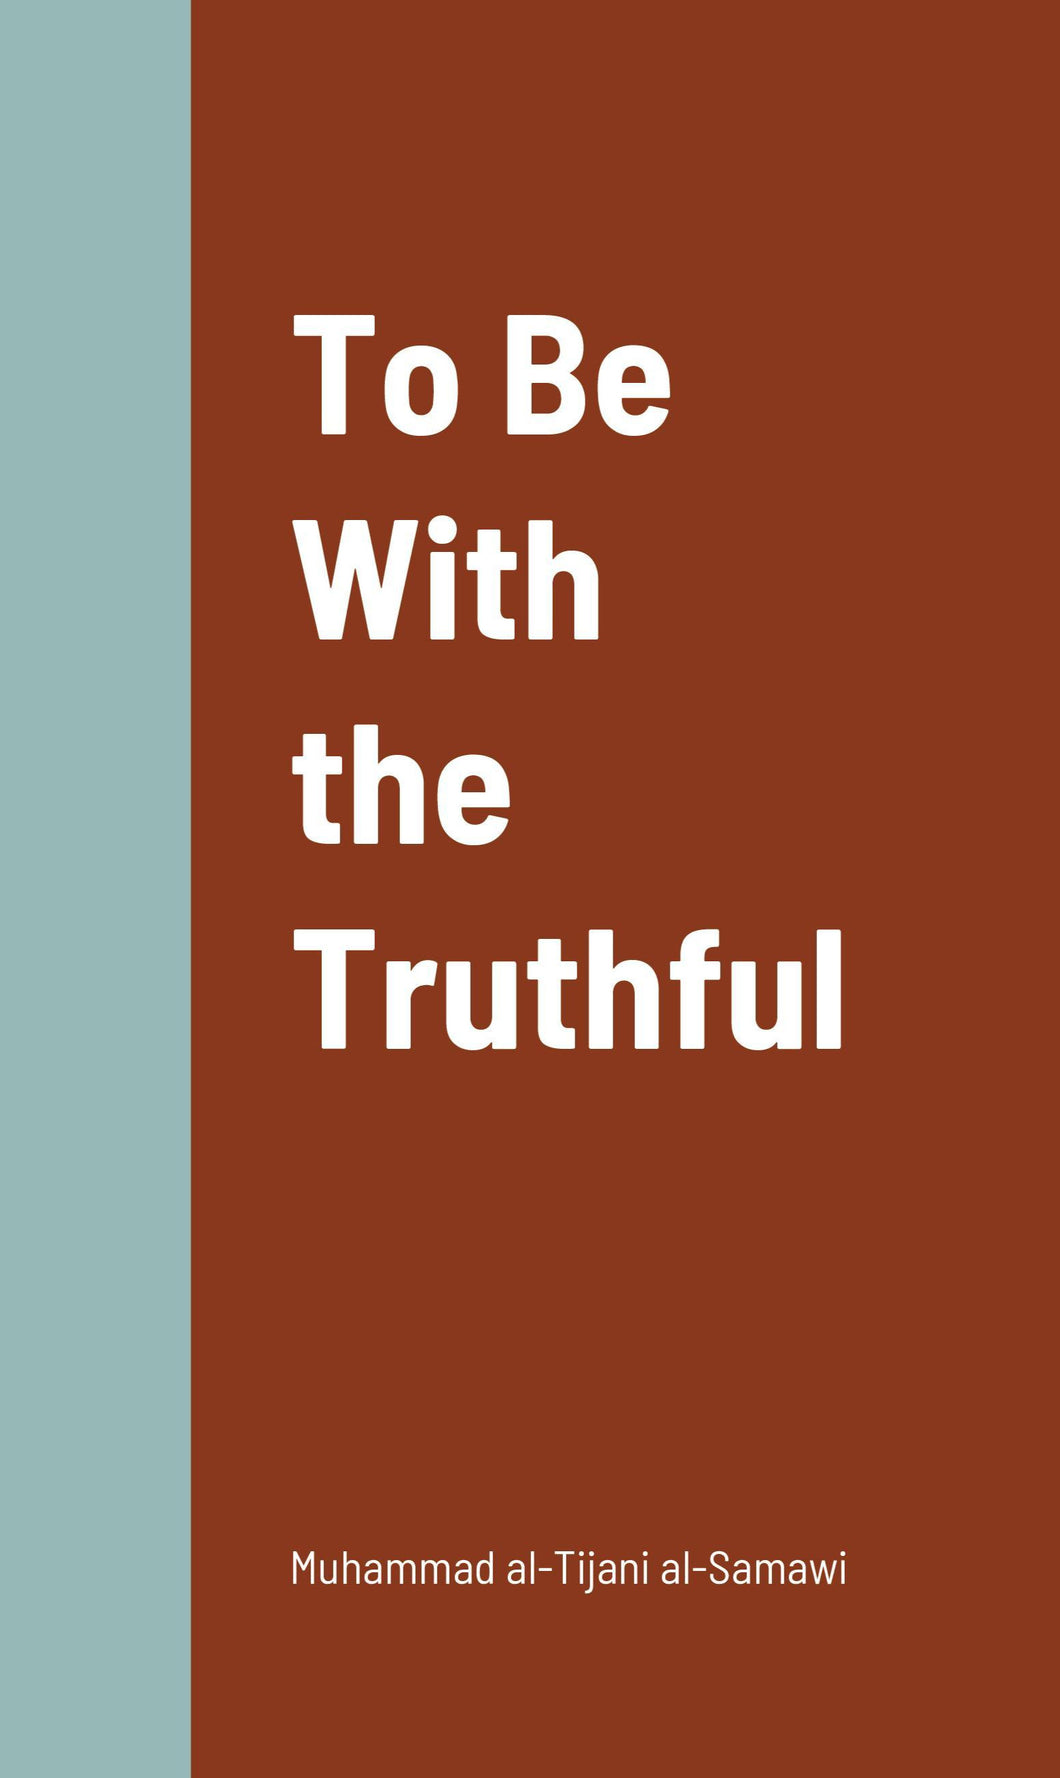 To Be With The Truthful-al-Burāq